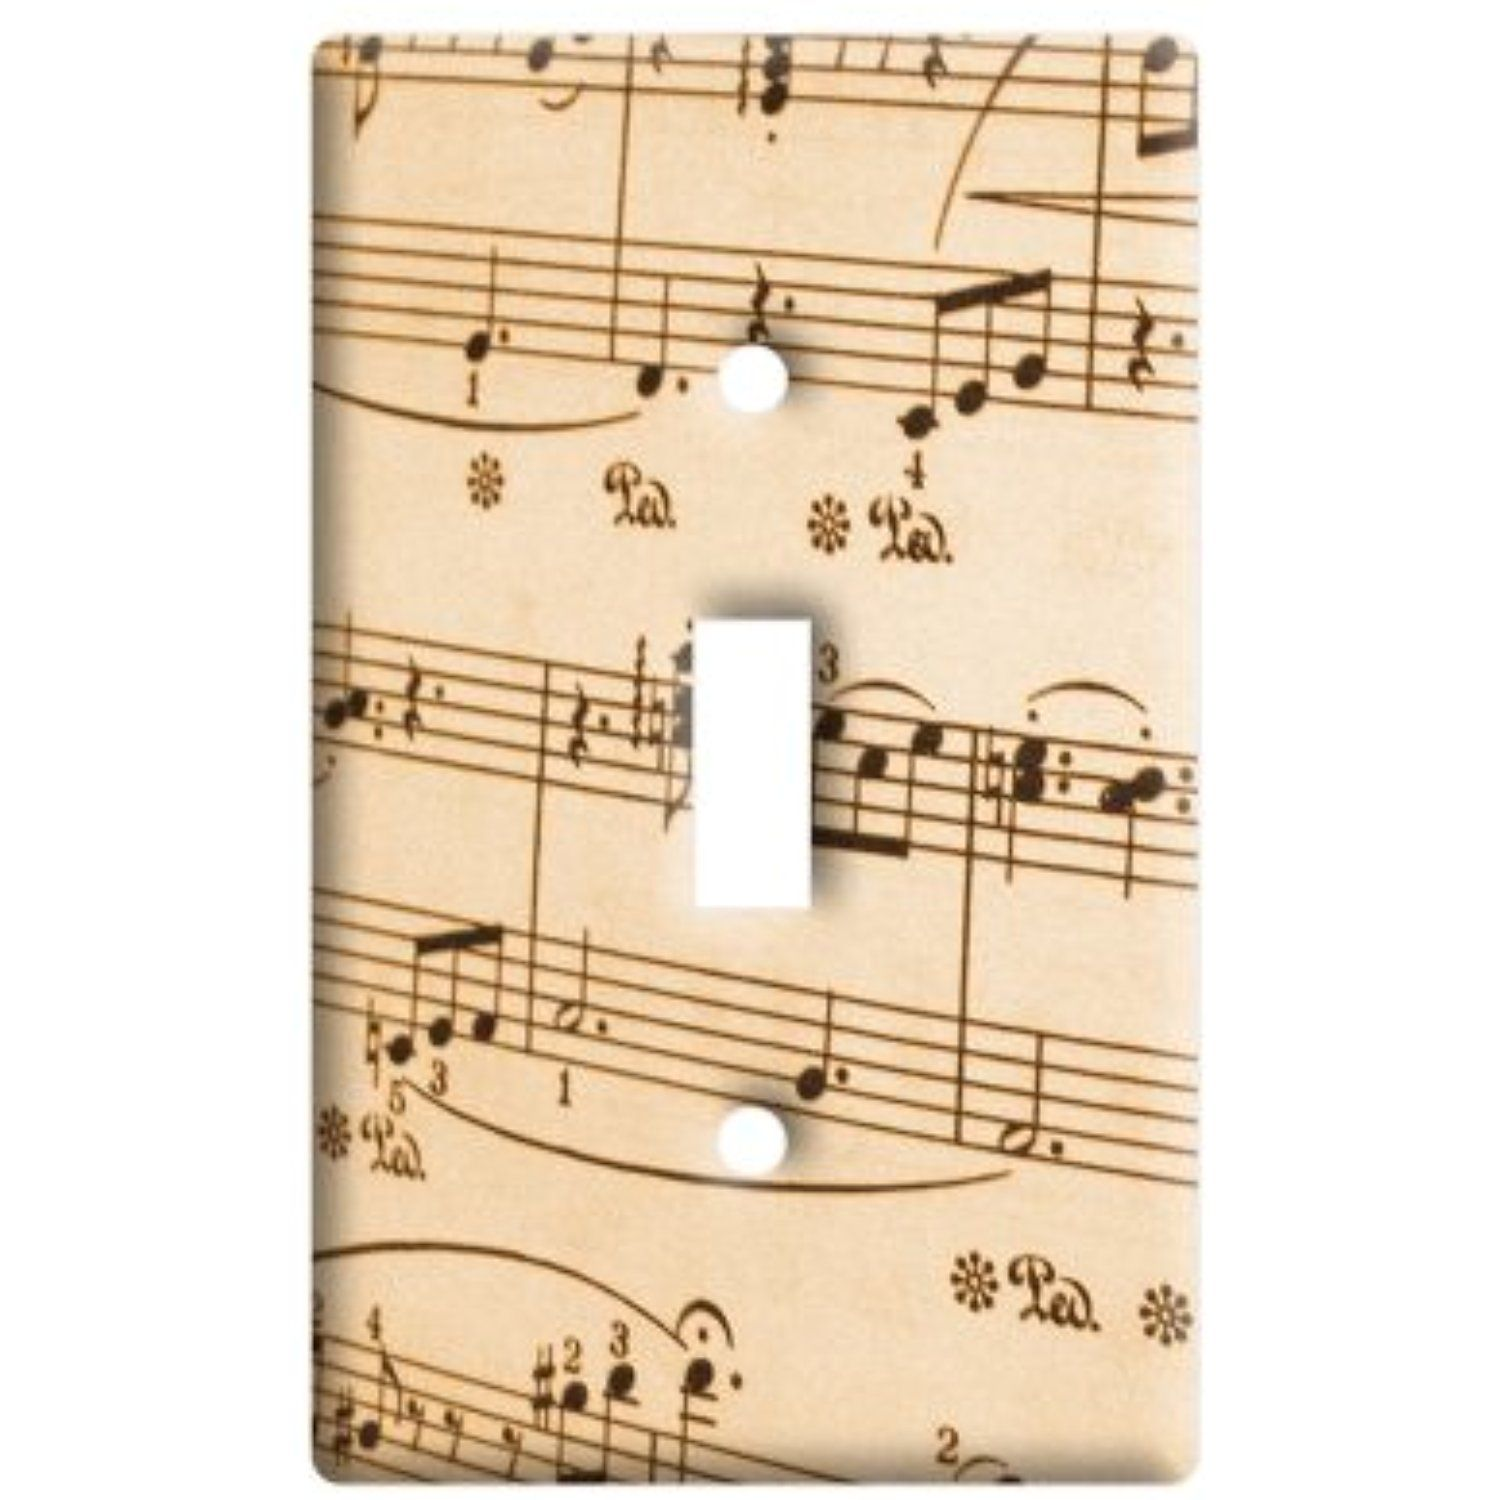 Fantastic Treble Clef Wall Art Pictures Inspiration - The Wall Art ...